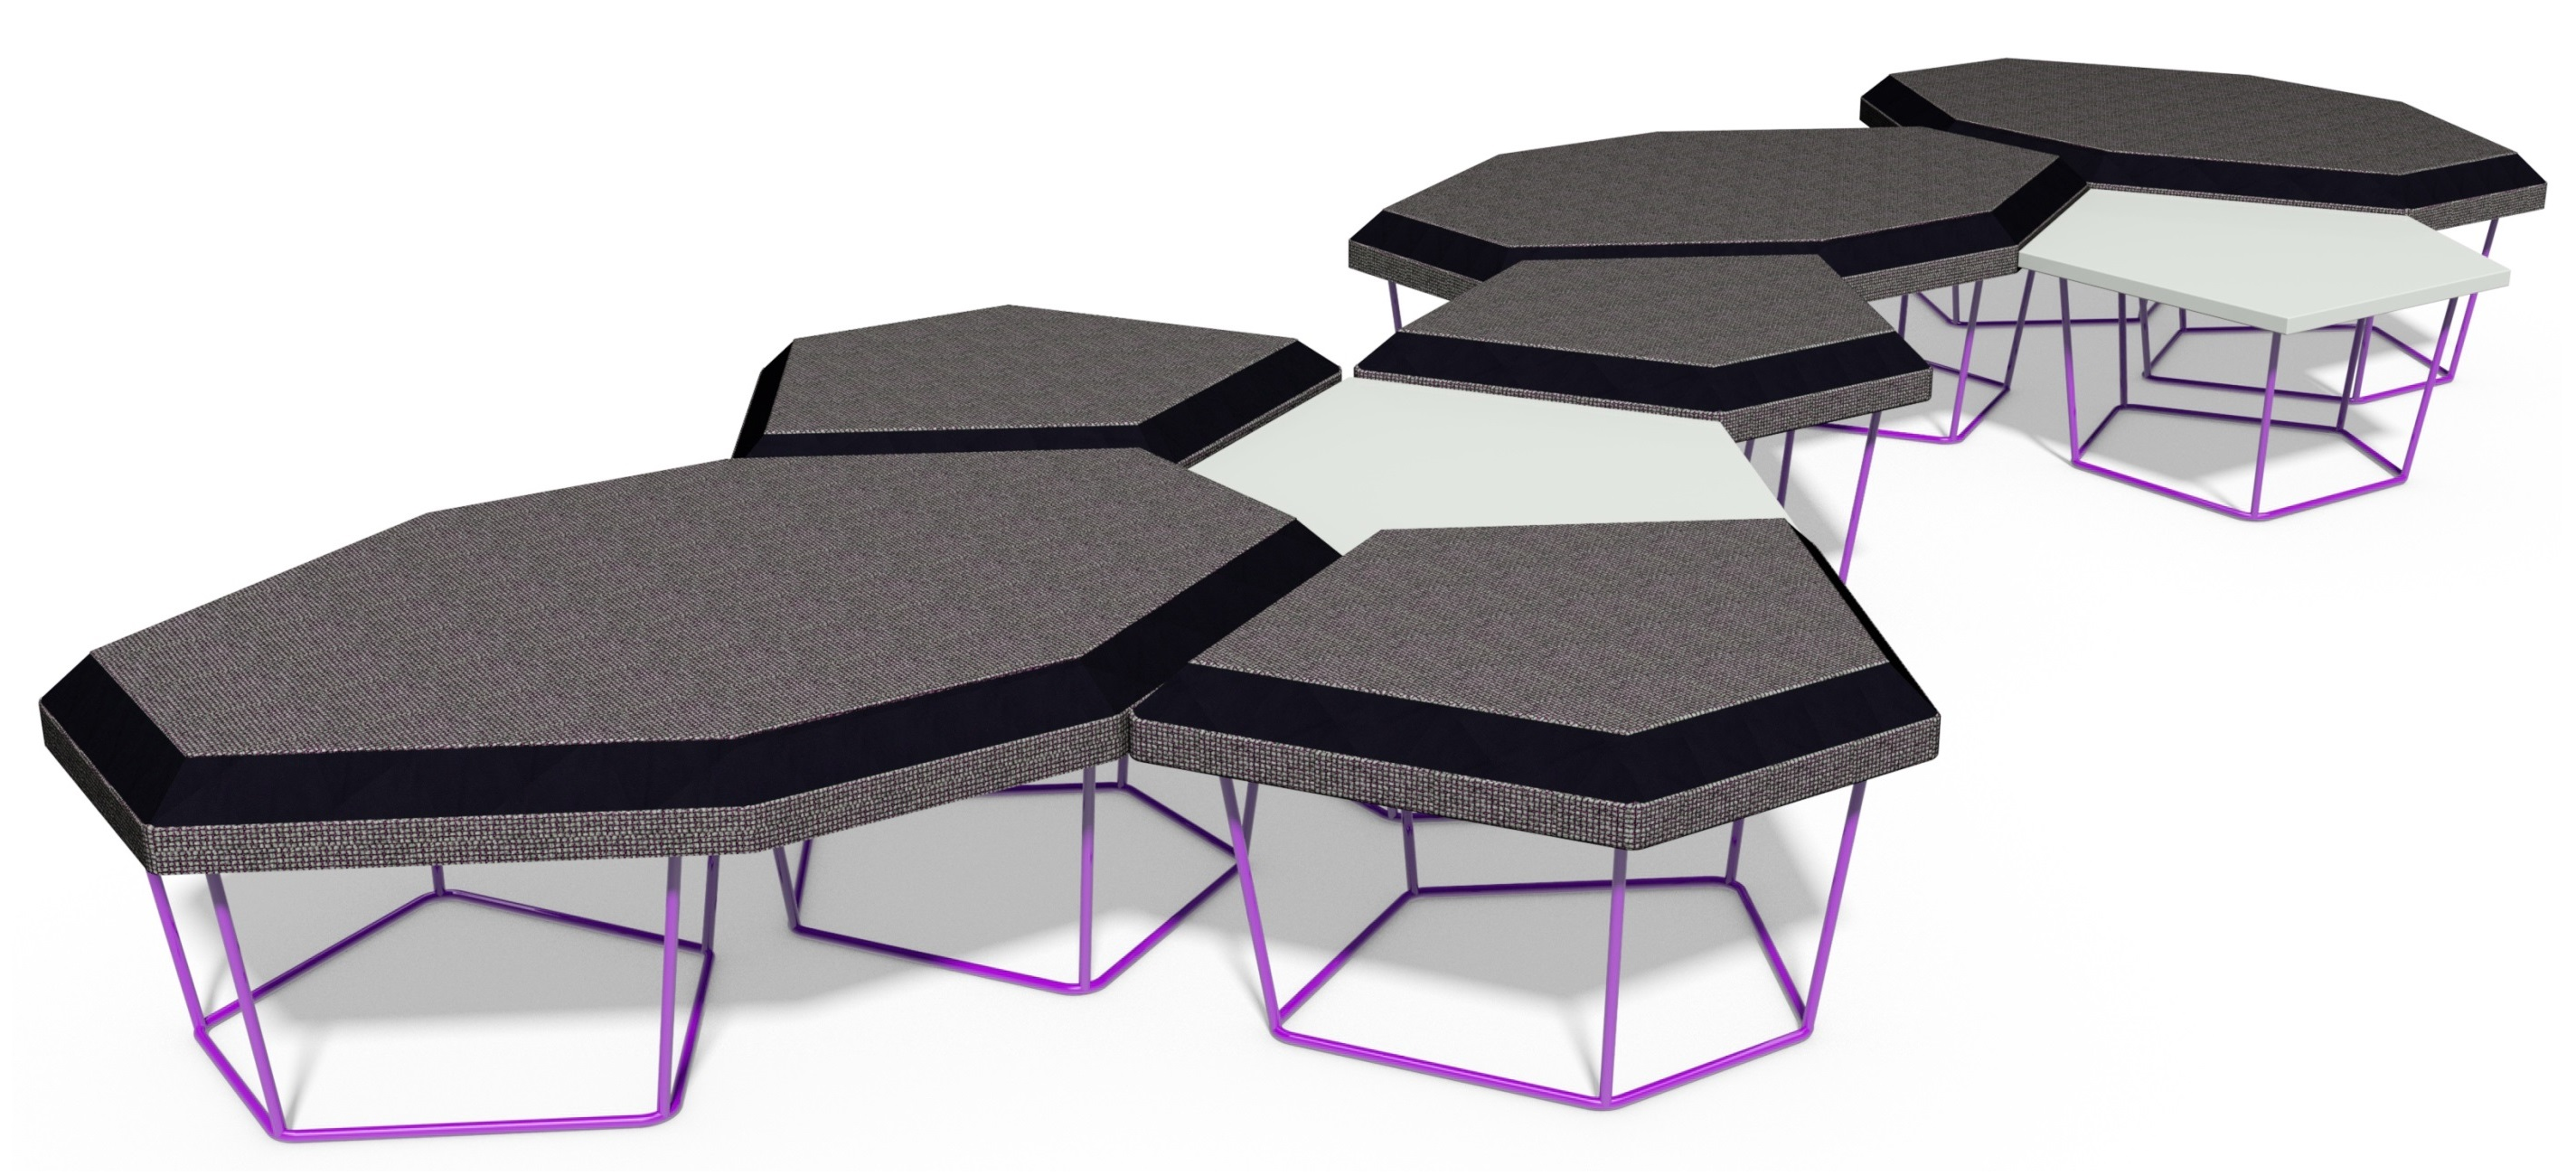 Breakout Seating - NEST